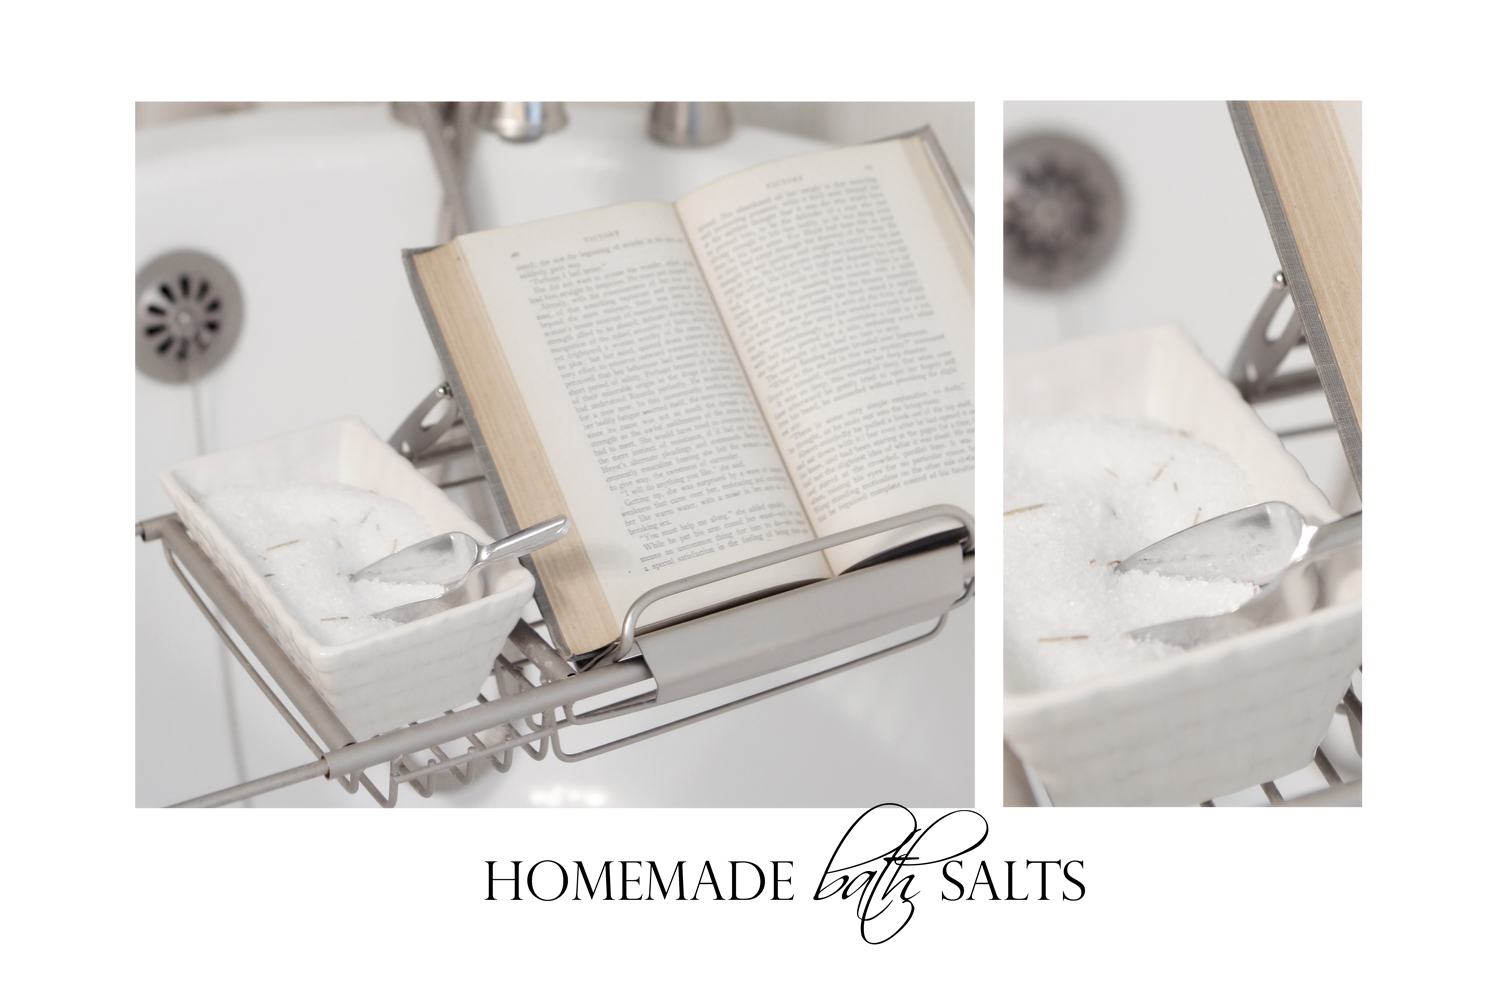 homemade bath salts 1500x1000